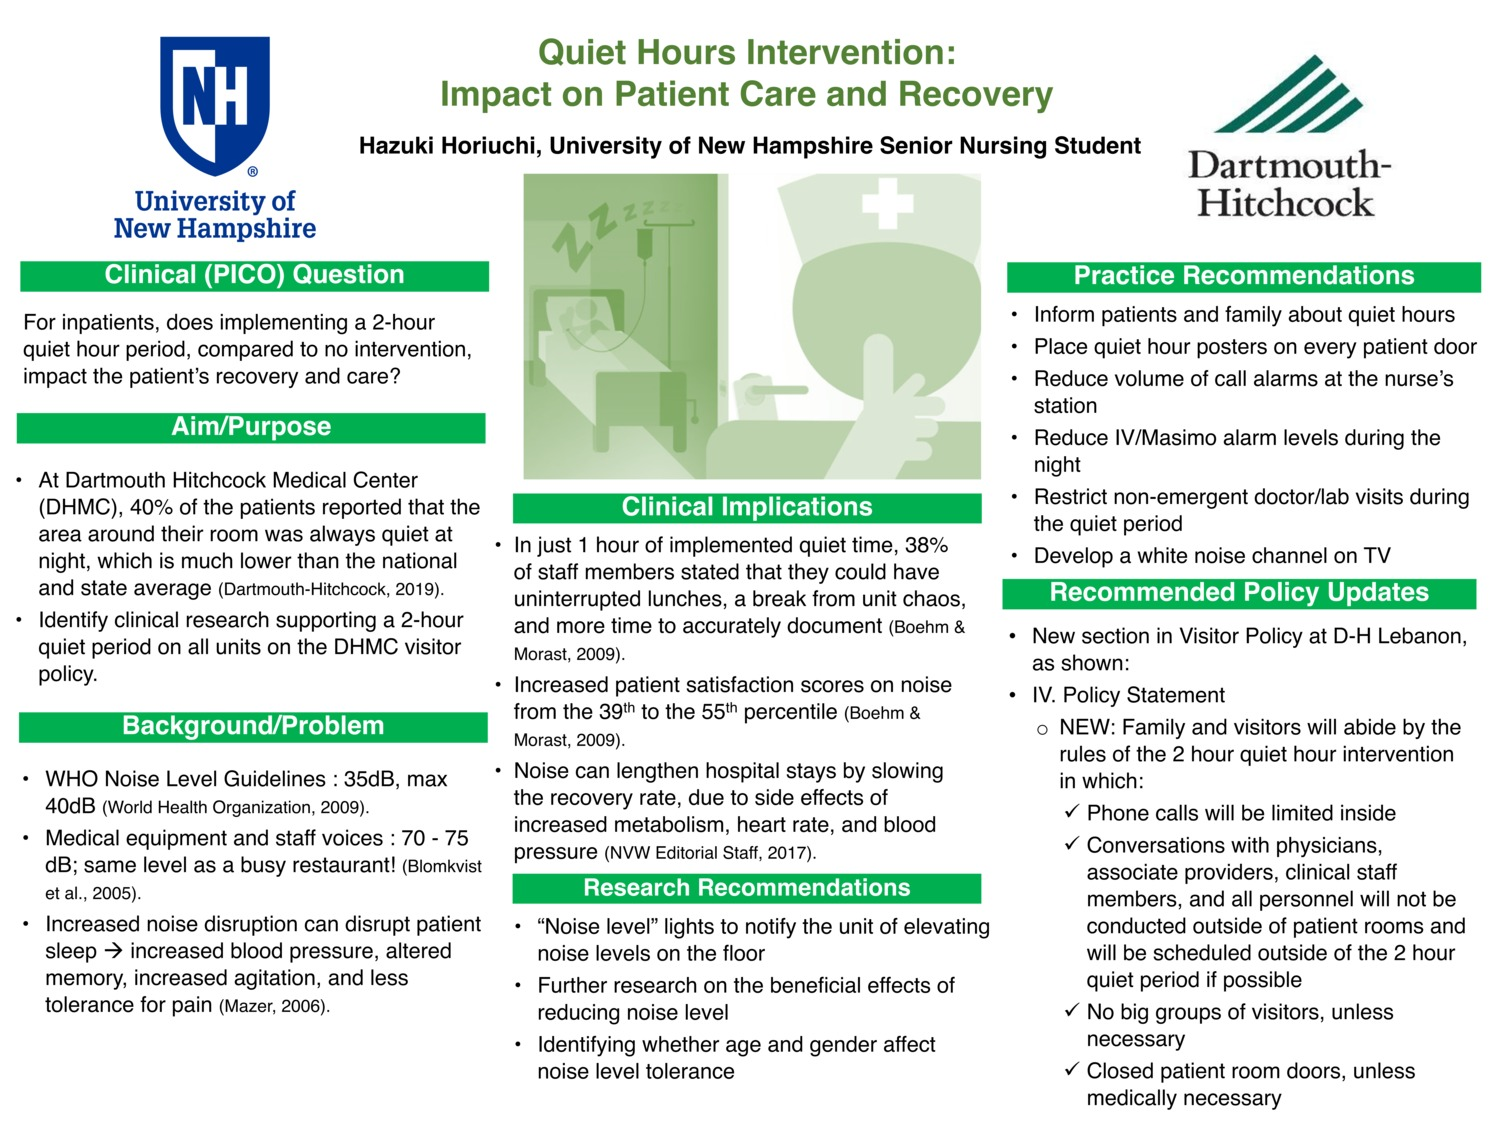 Quiet Hours Intervention: Impact On Patient Care And Recovery by hh1009